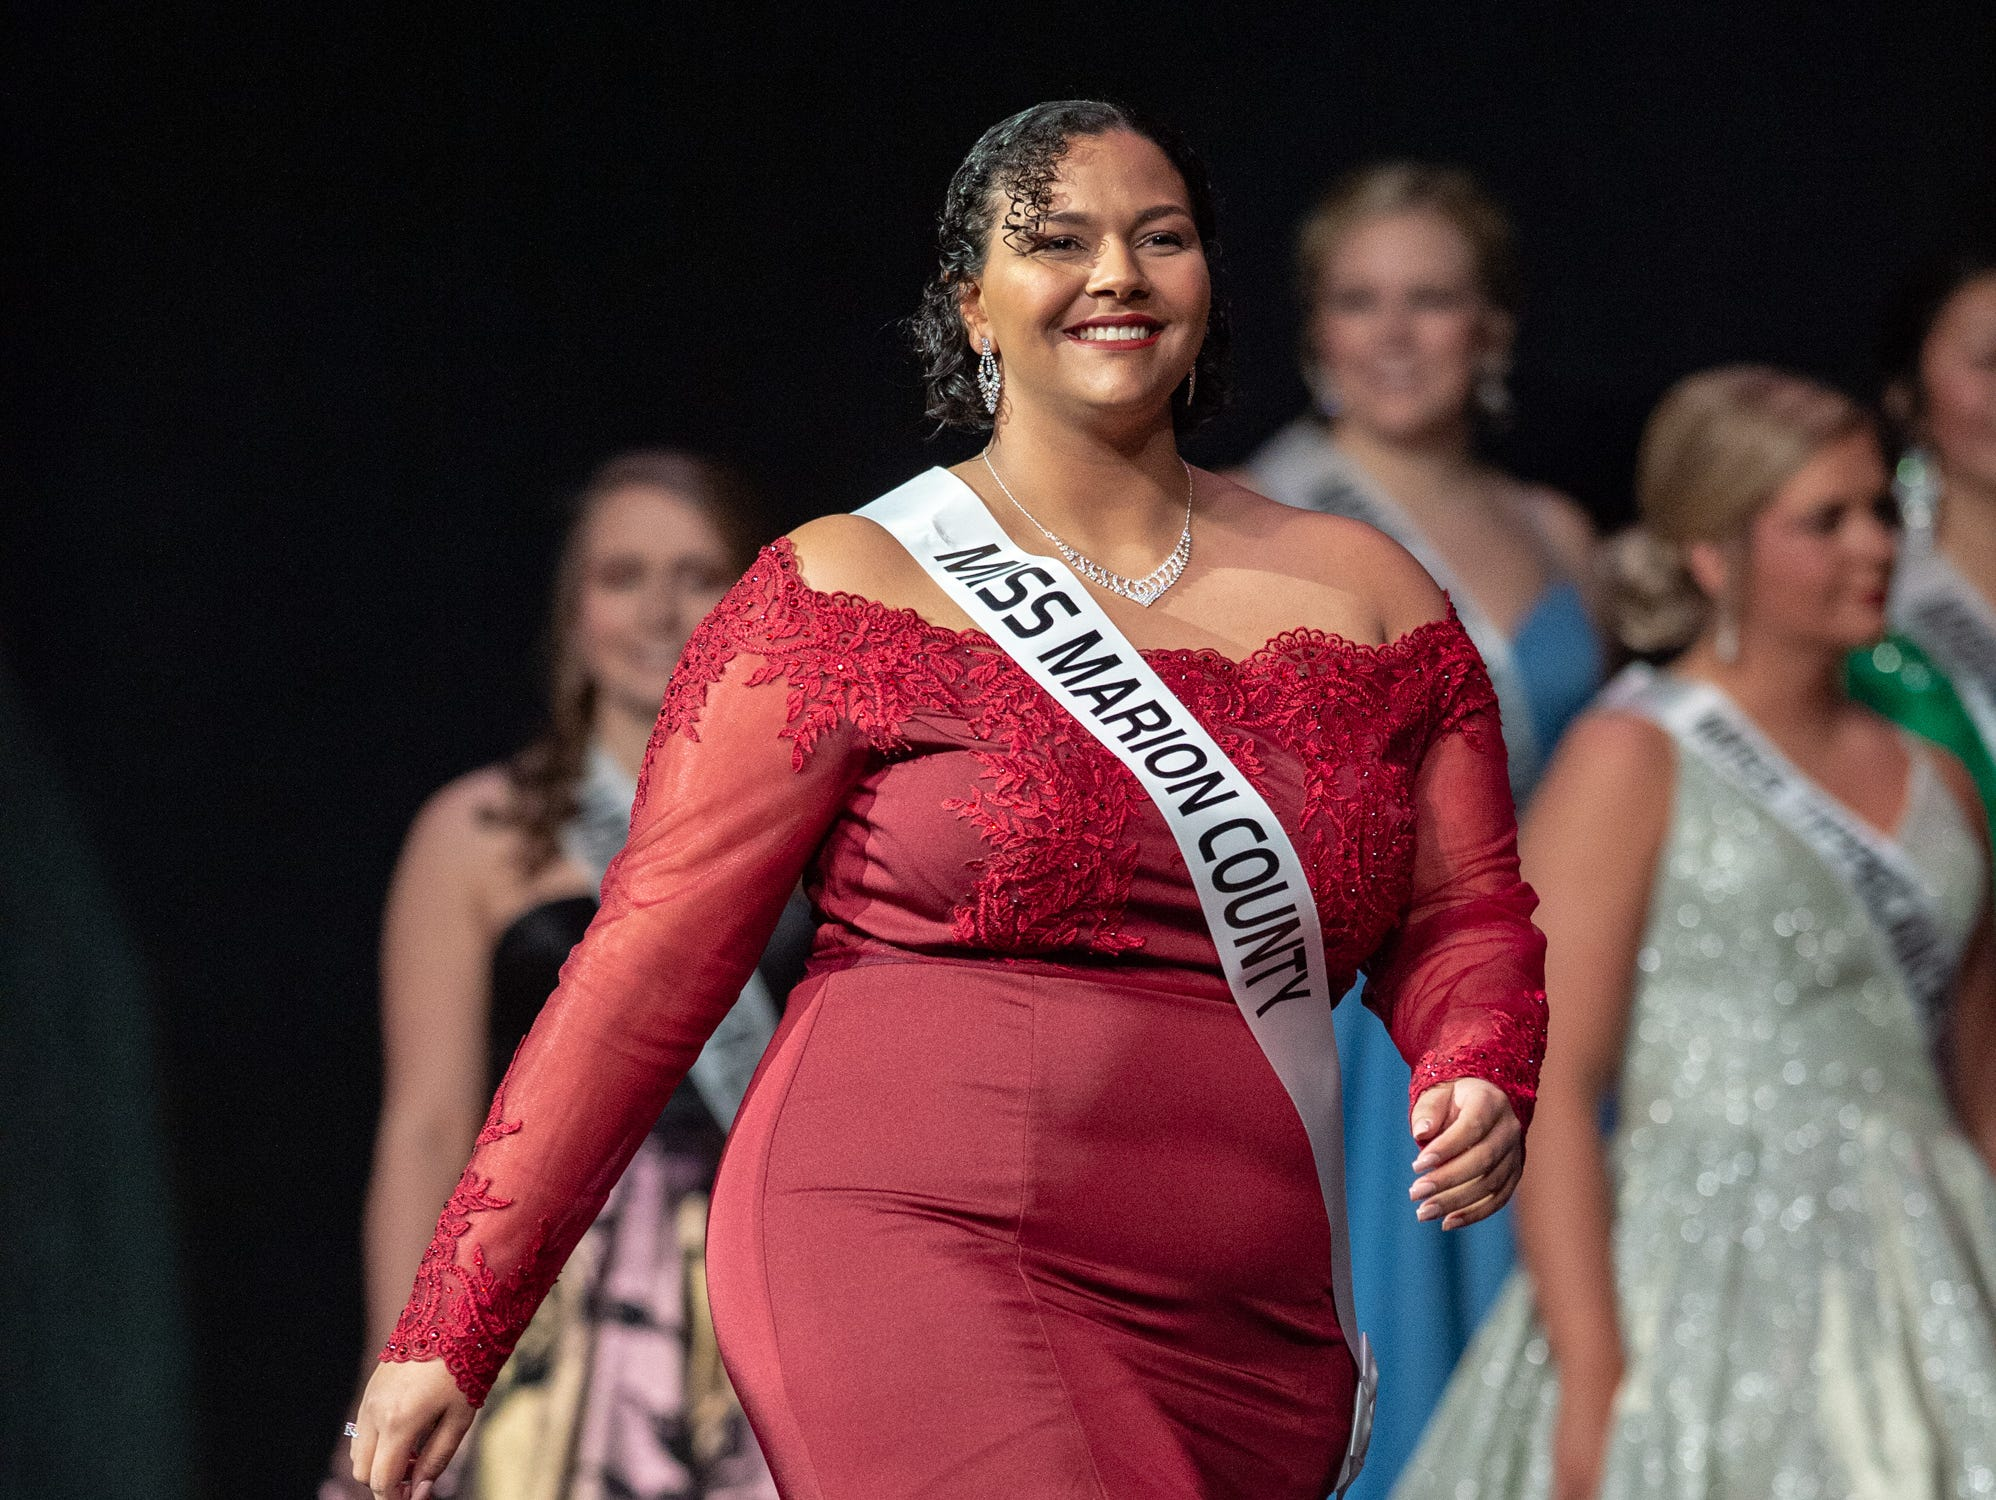 Miss Marion County, Desiree Cowling, returns to the stage with other contestants during the 61st Indiana State Fair Queen Pageant at the Indiana State Fairgrounds in Indianapolis on Sunday, Jan. 6, 2019.